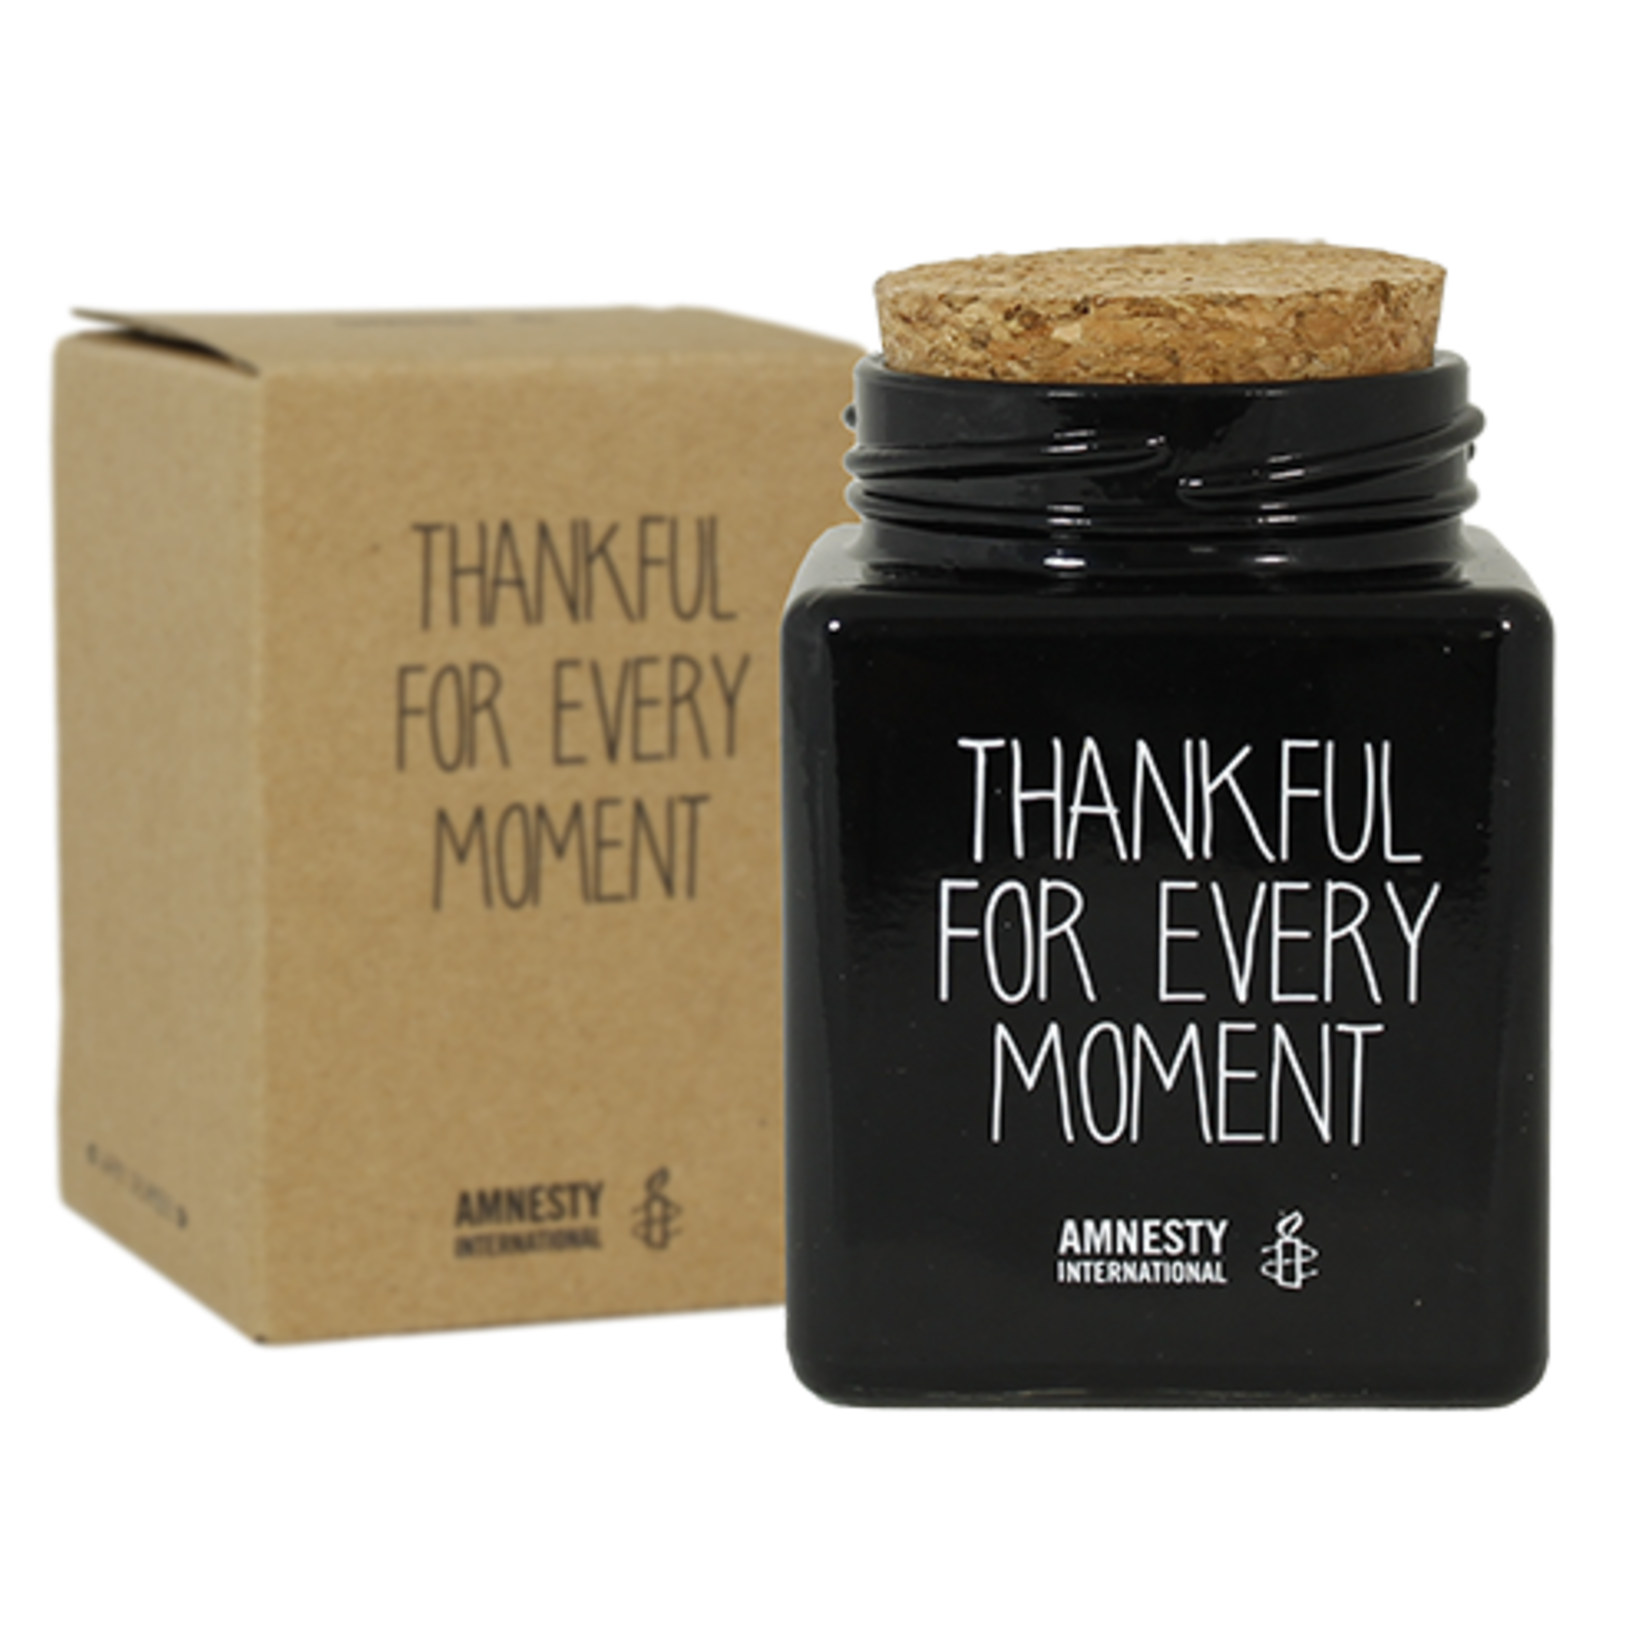 My Flame Sojakaars - Thankful for every moment - Zwart